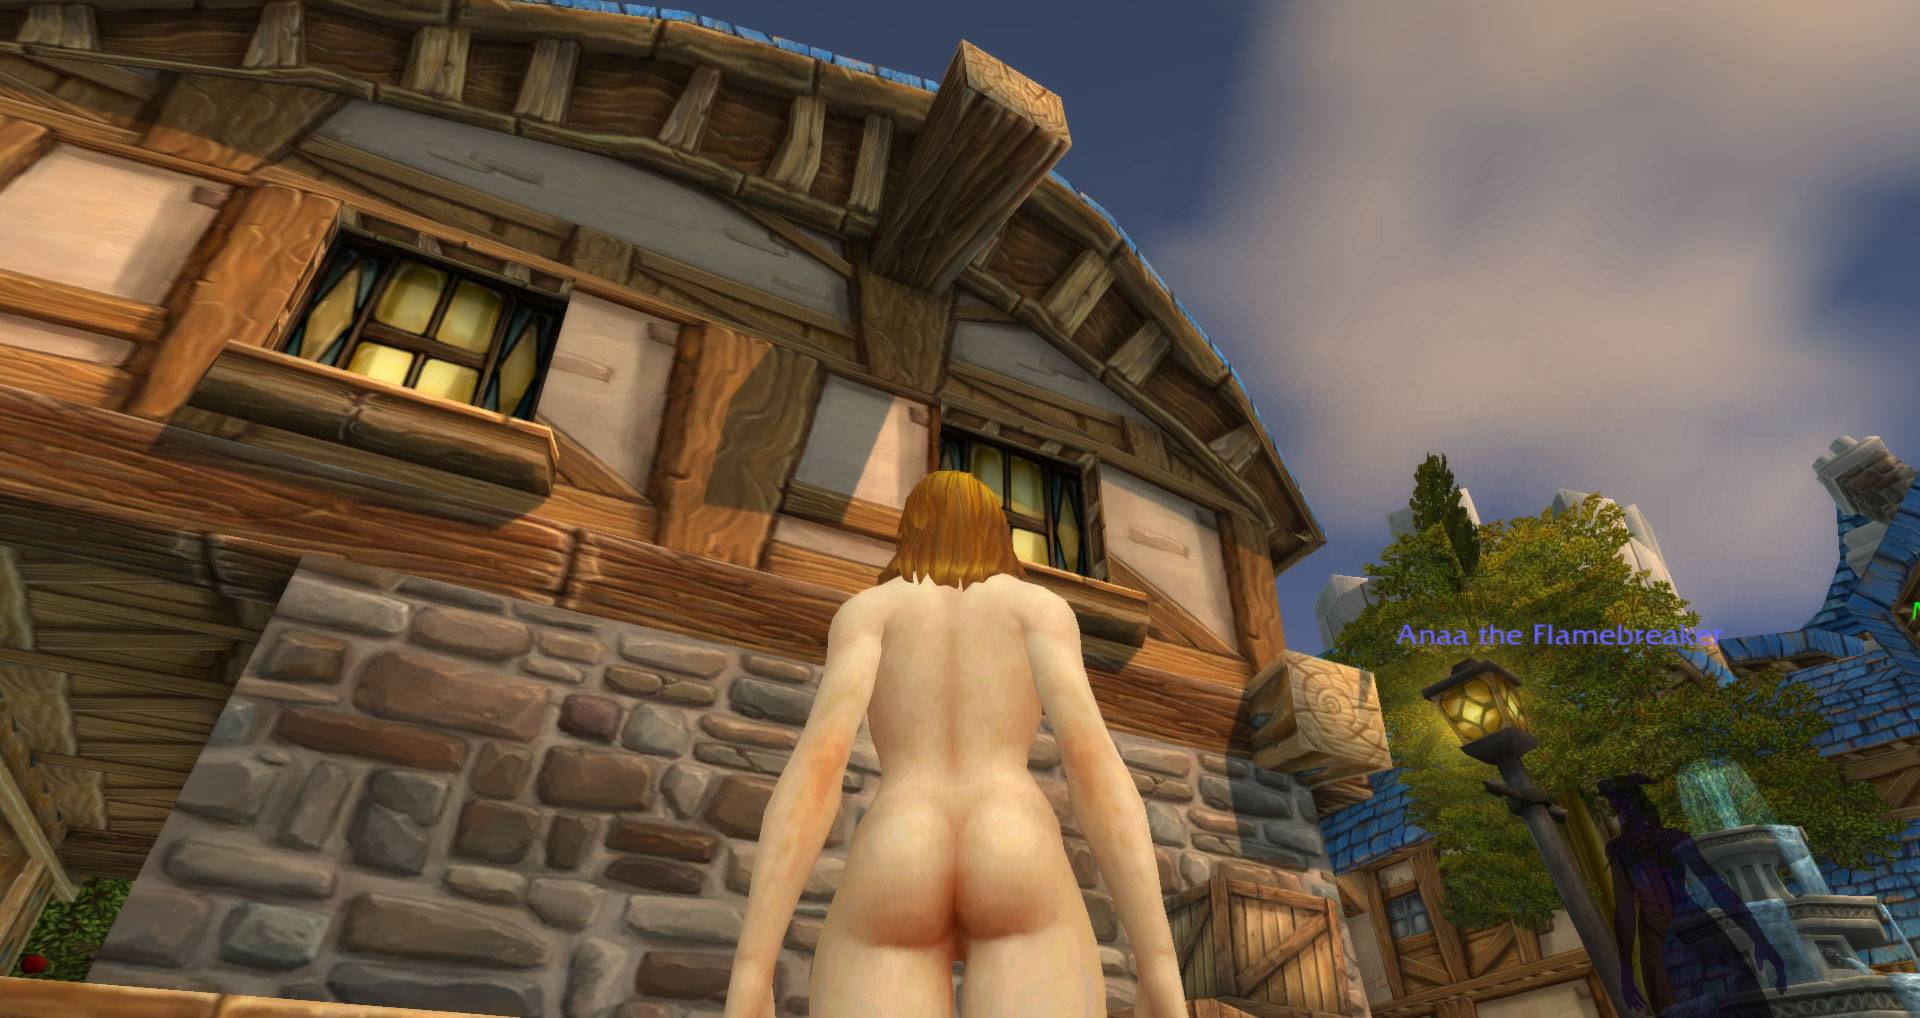 World of warcraft nude mod 3 02 erotic images